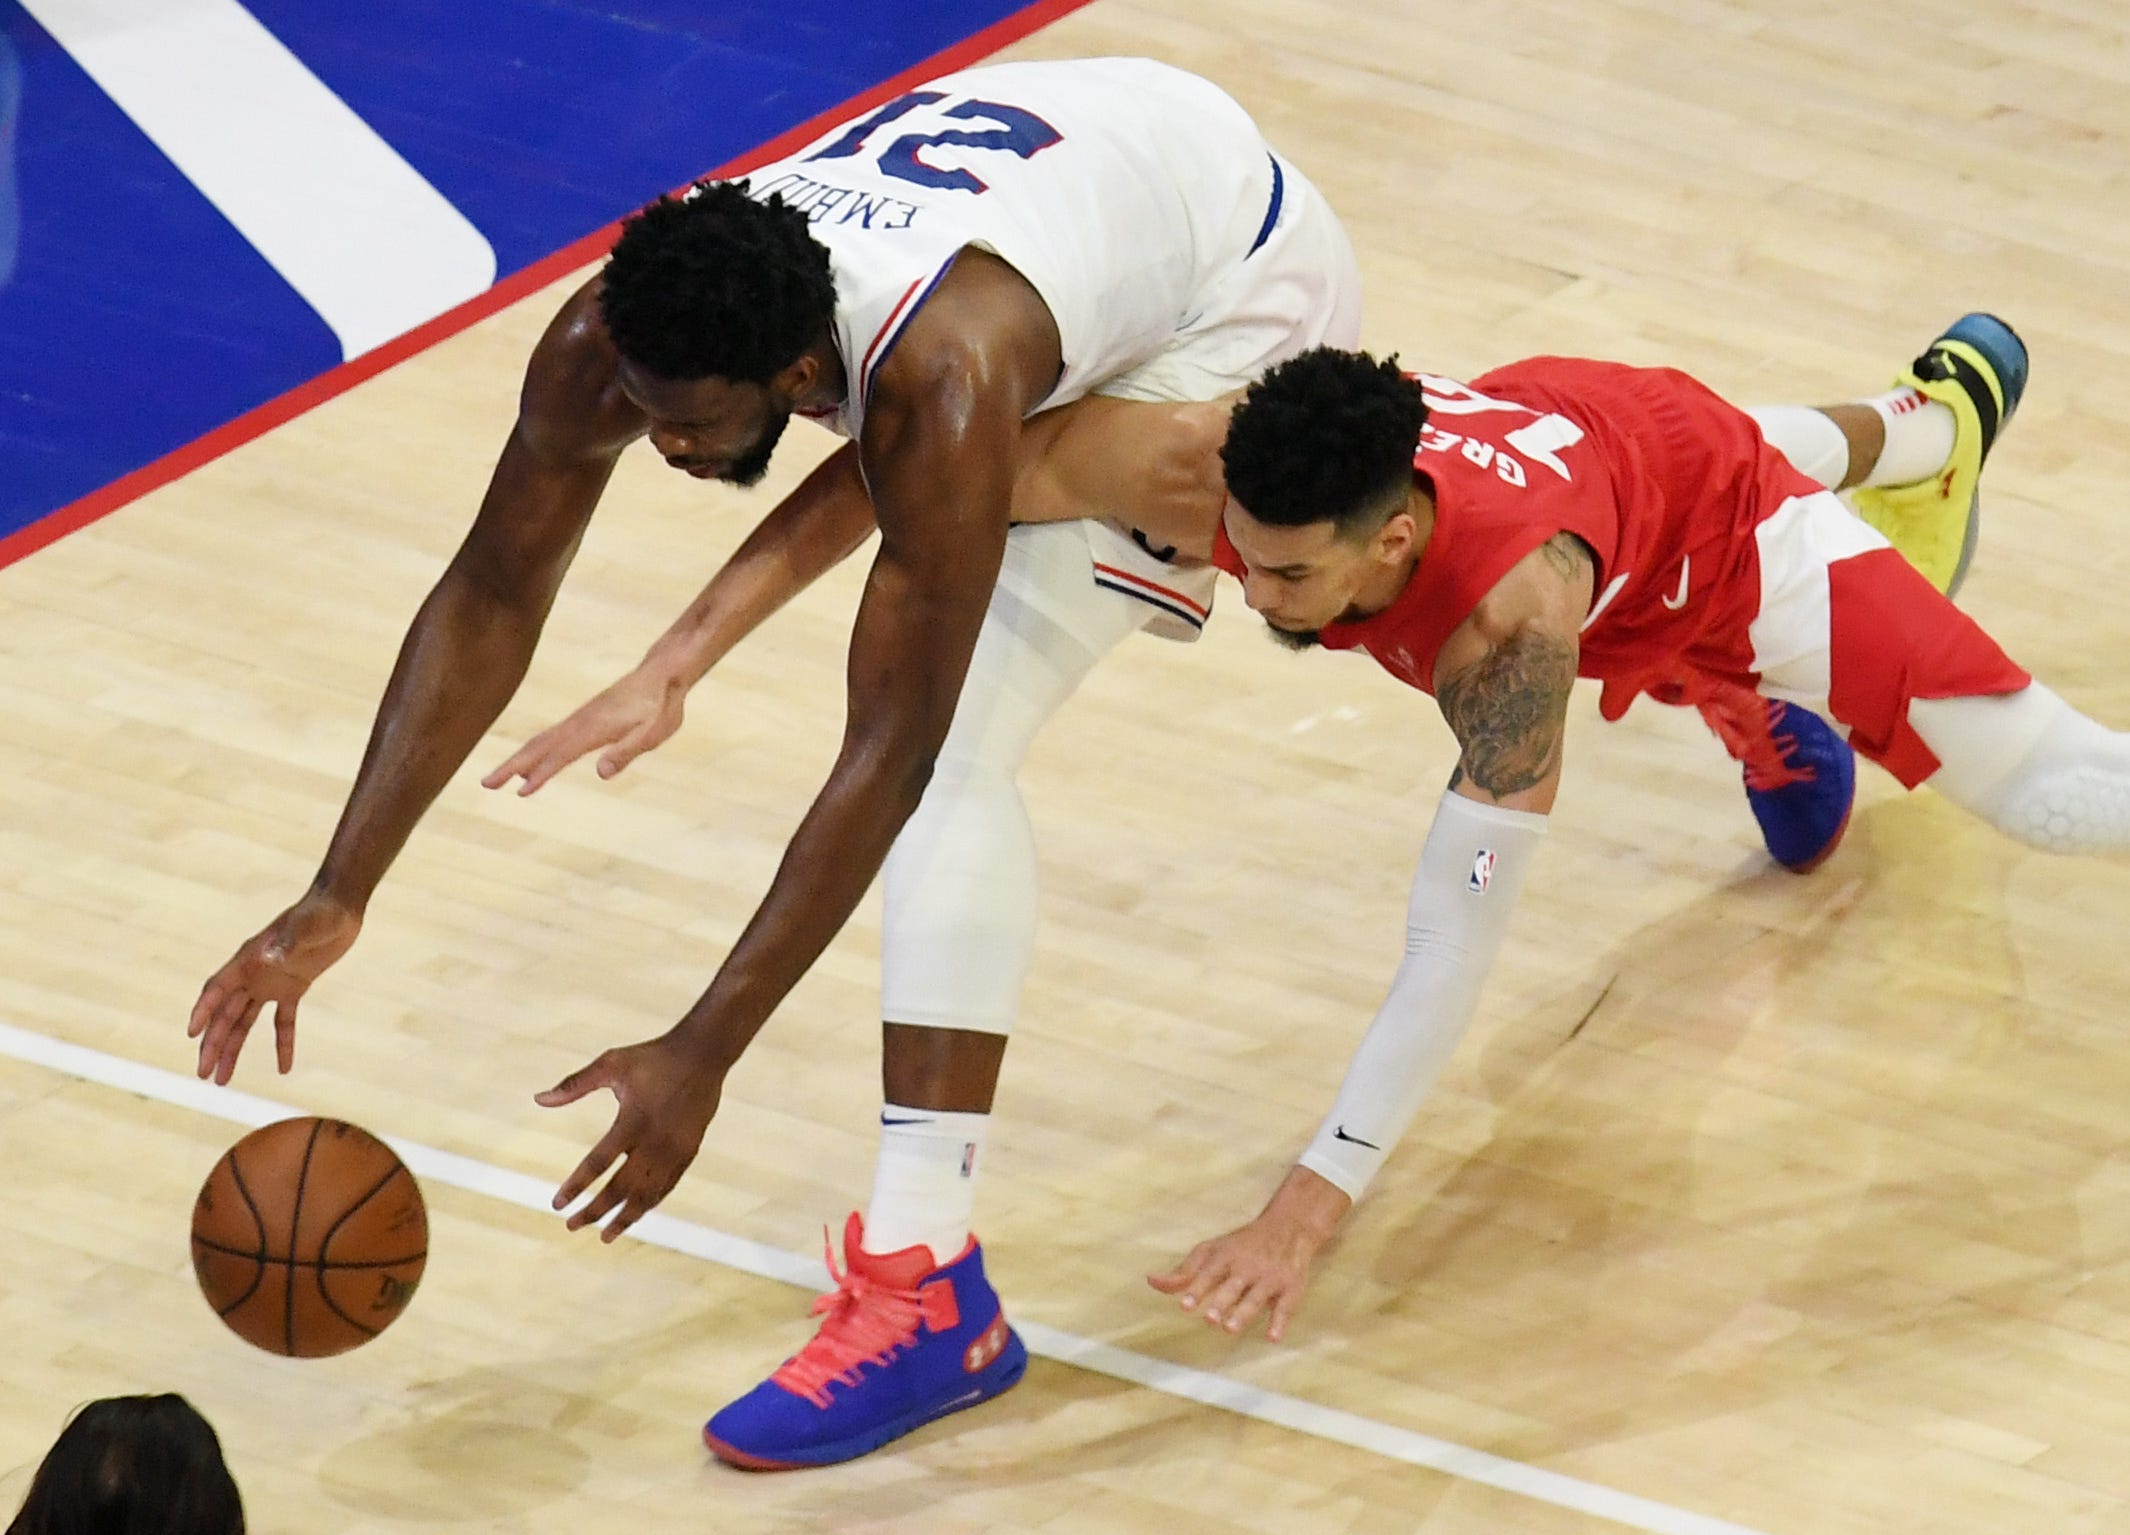 May 9: Sixers center Joel Embiid (21) scrambles for a loose ball against Raptors guard Danny Green (14) during Game 6.